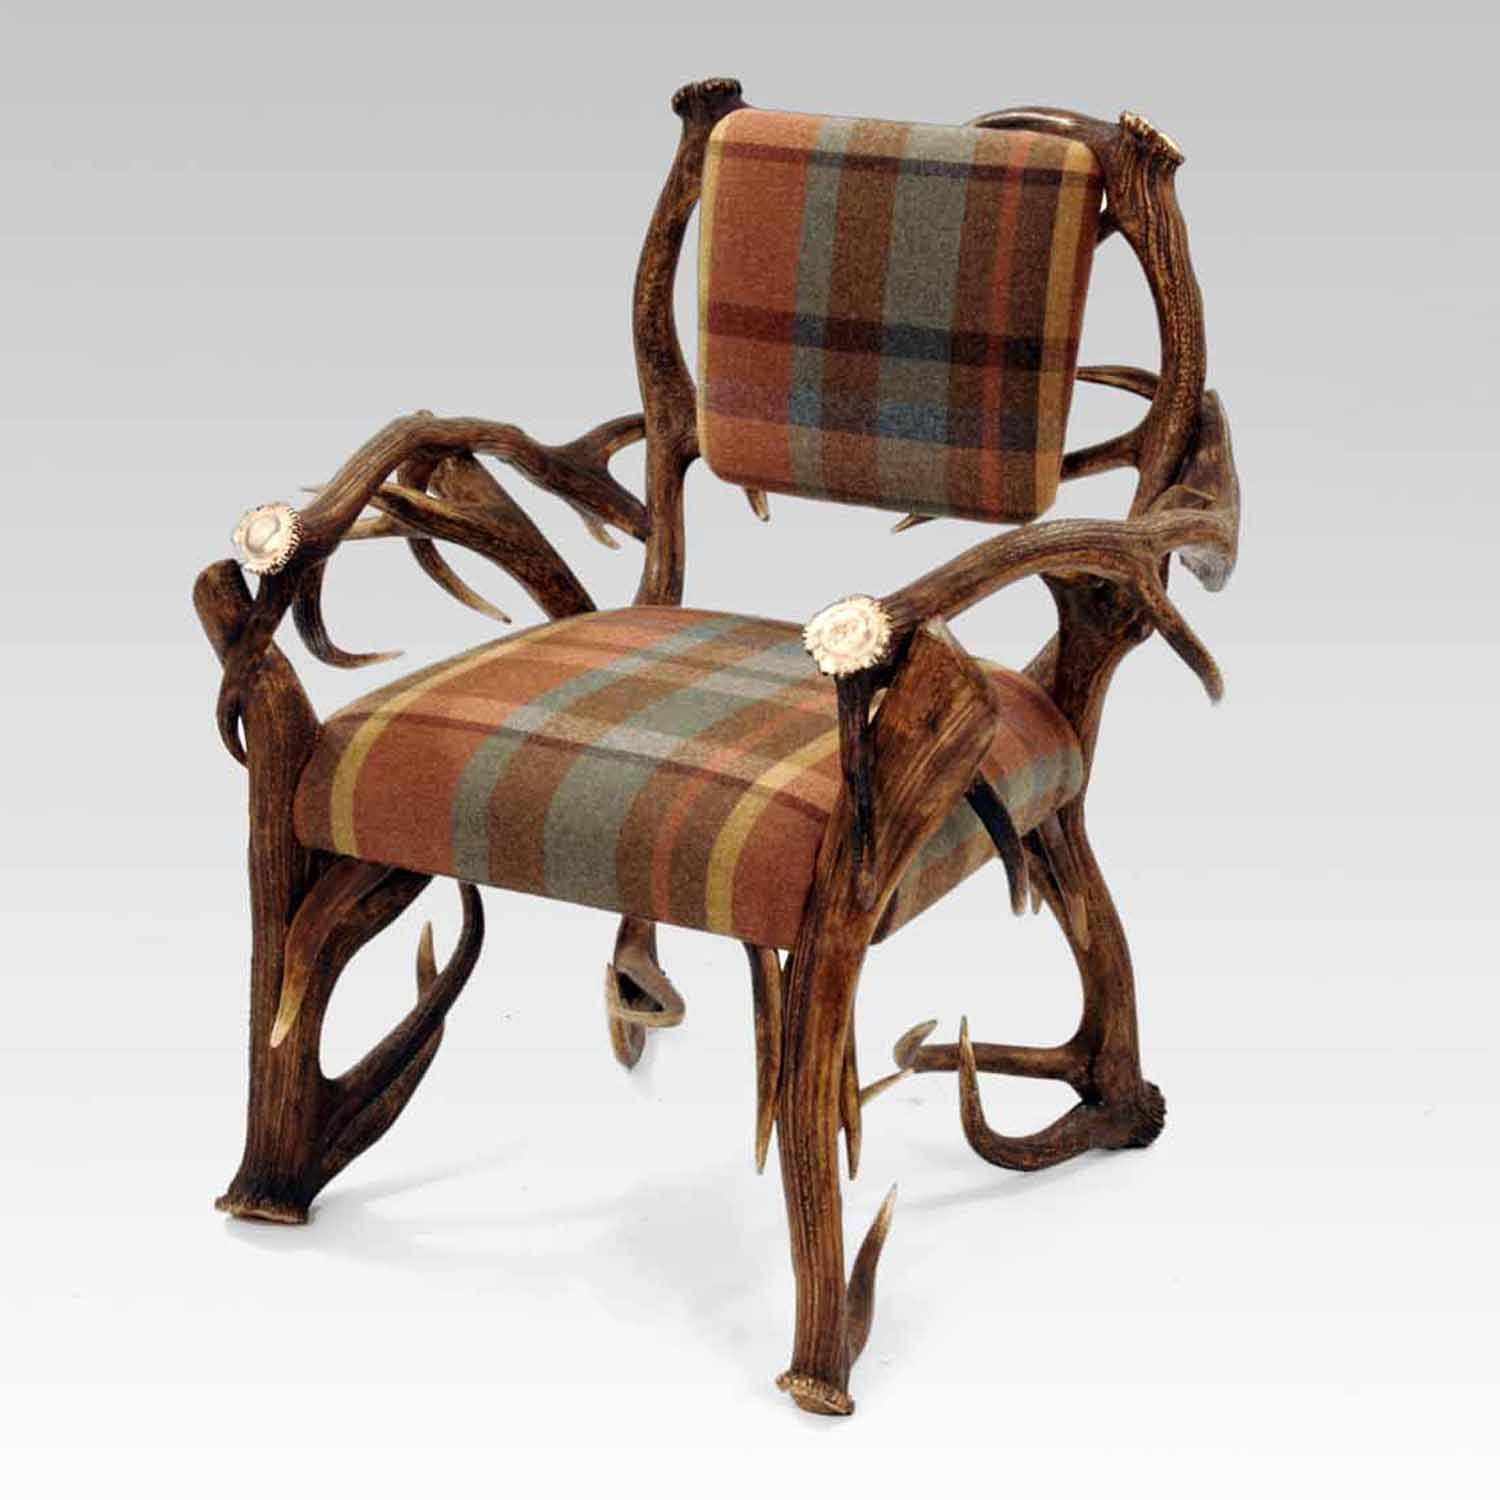 A chair made from antlers